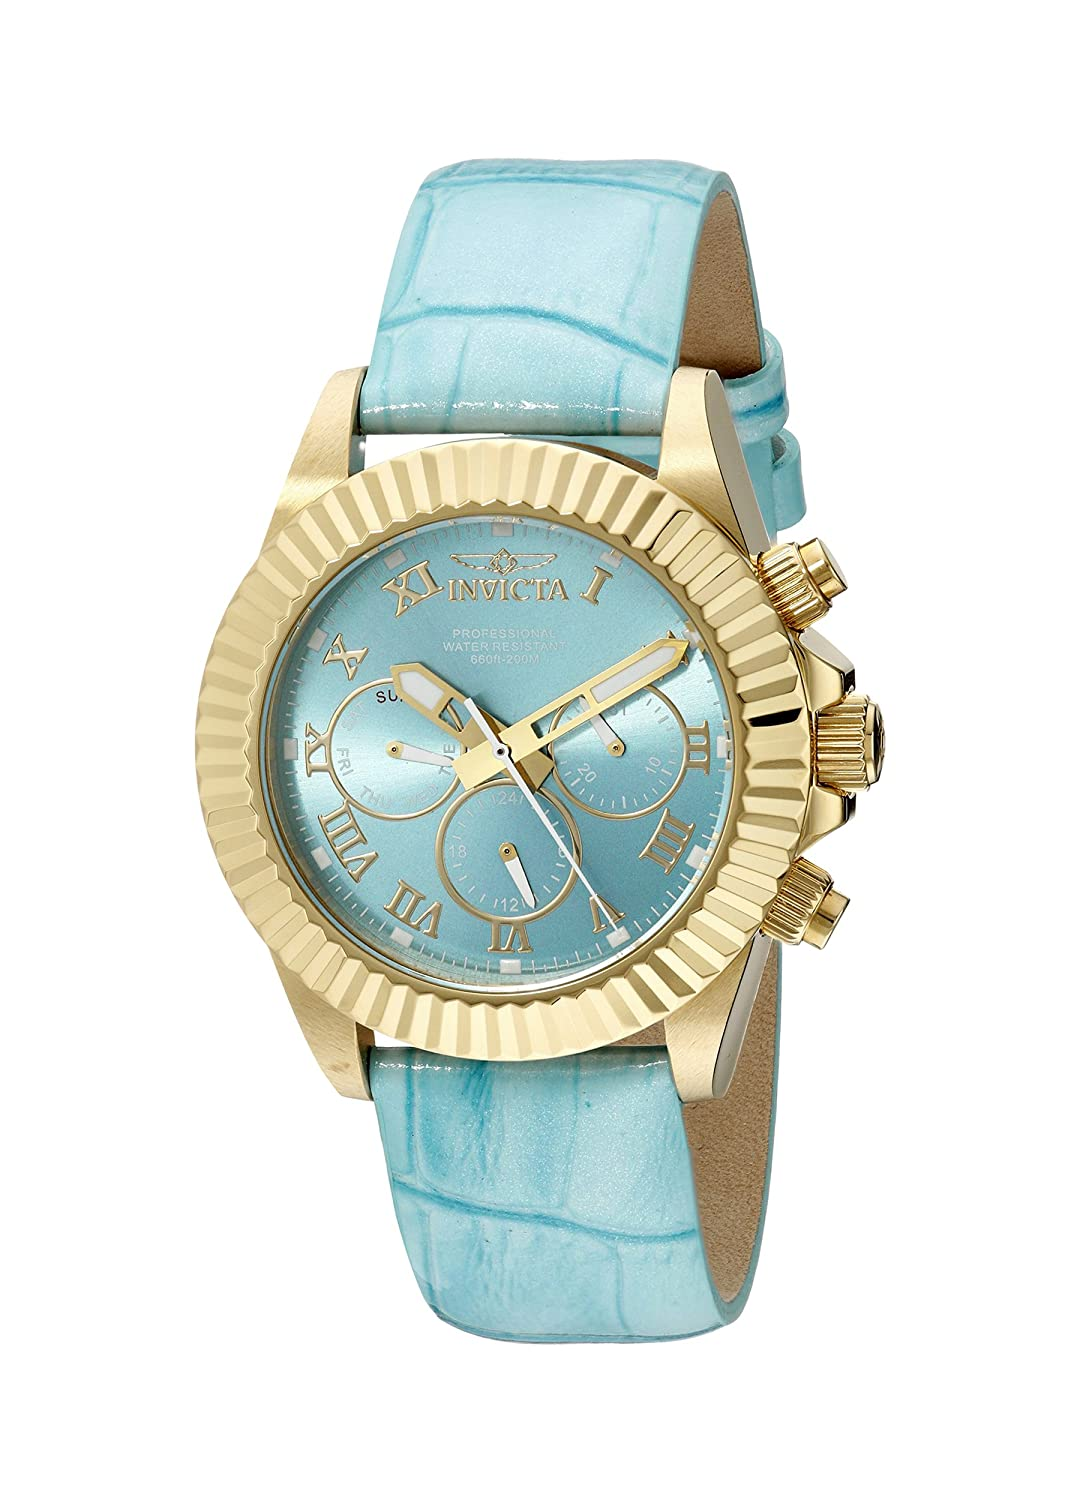 Invicta Women s 18487 Pro Diver Analog Display Swiss Quartz Blue Watch